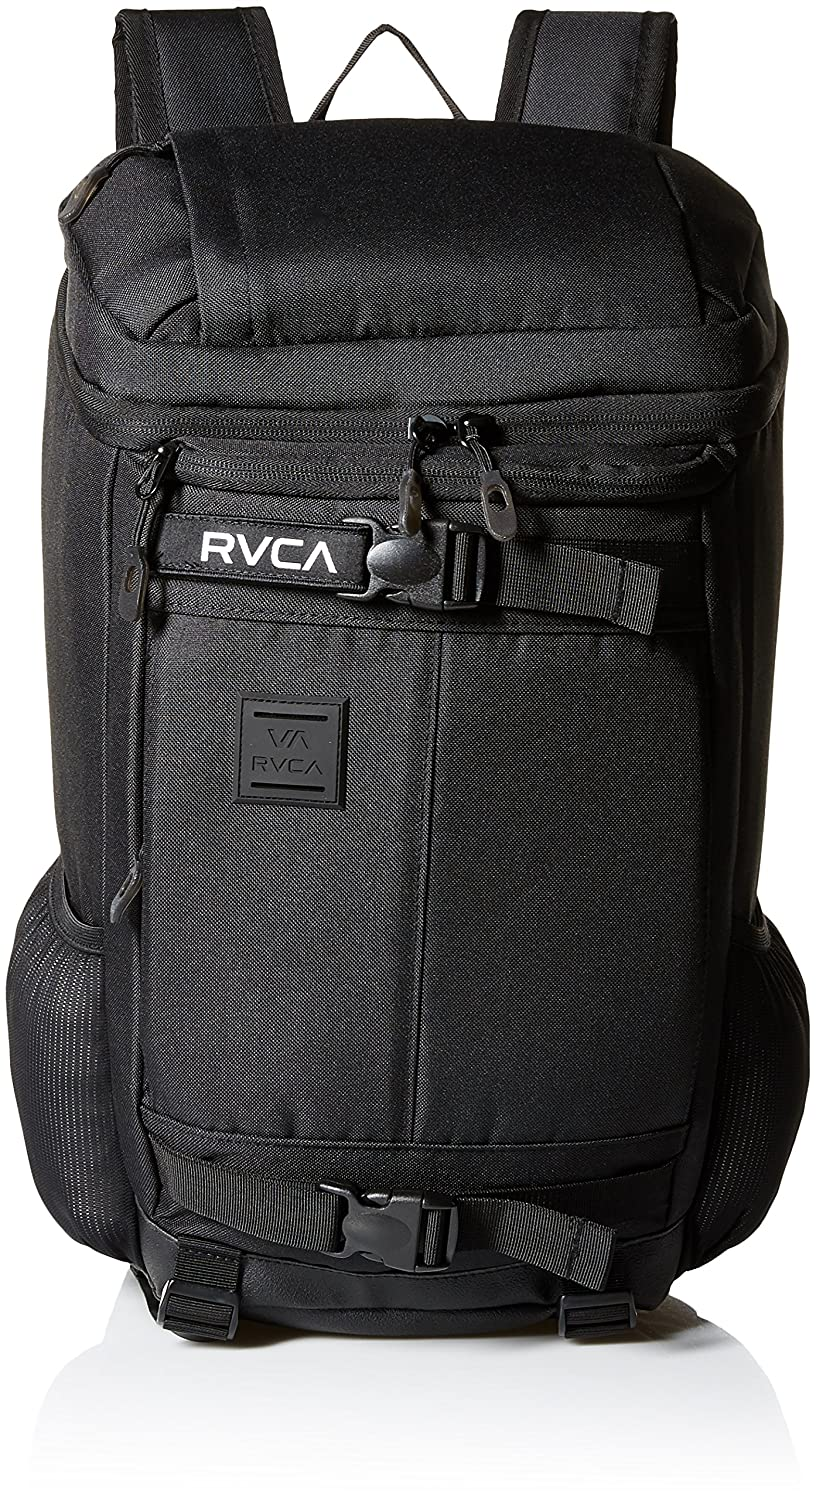 RVCA Men's Voyage Skate Backpack Black One Size MABKPRVS